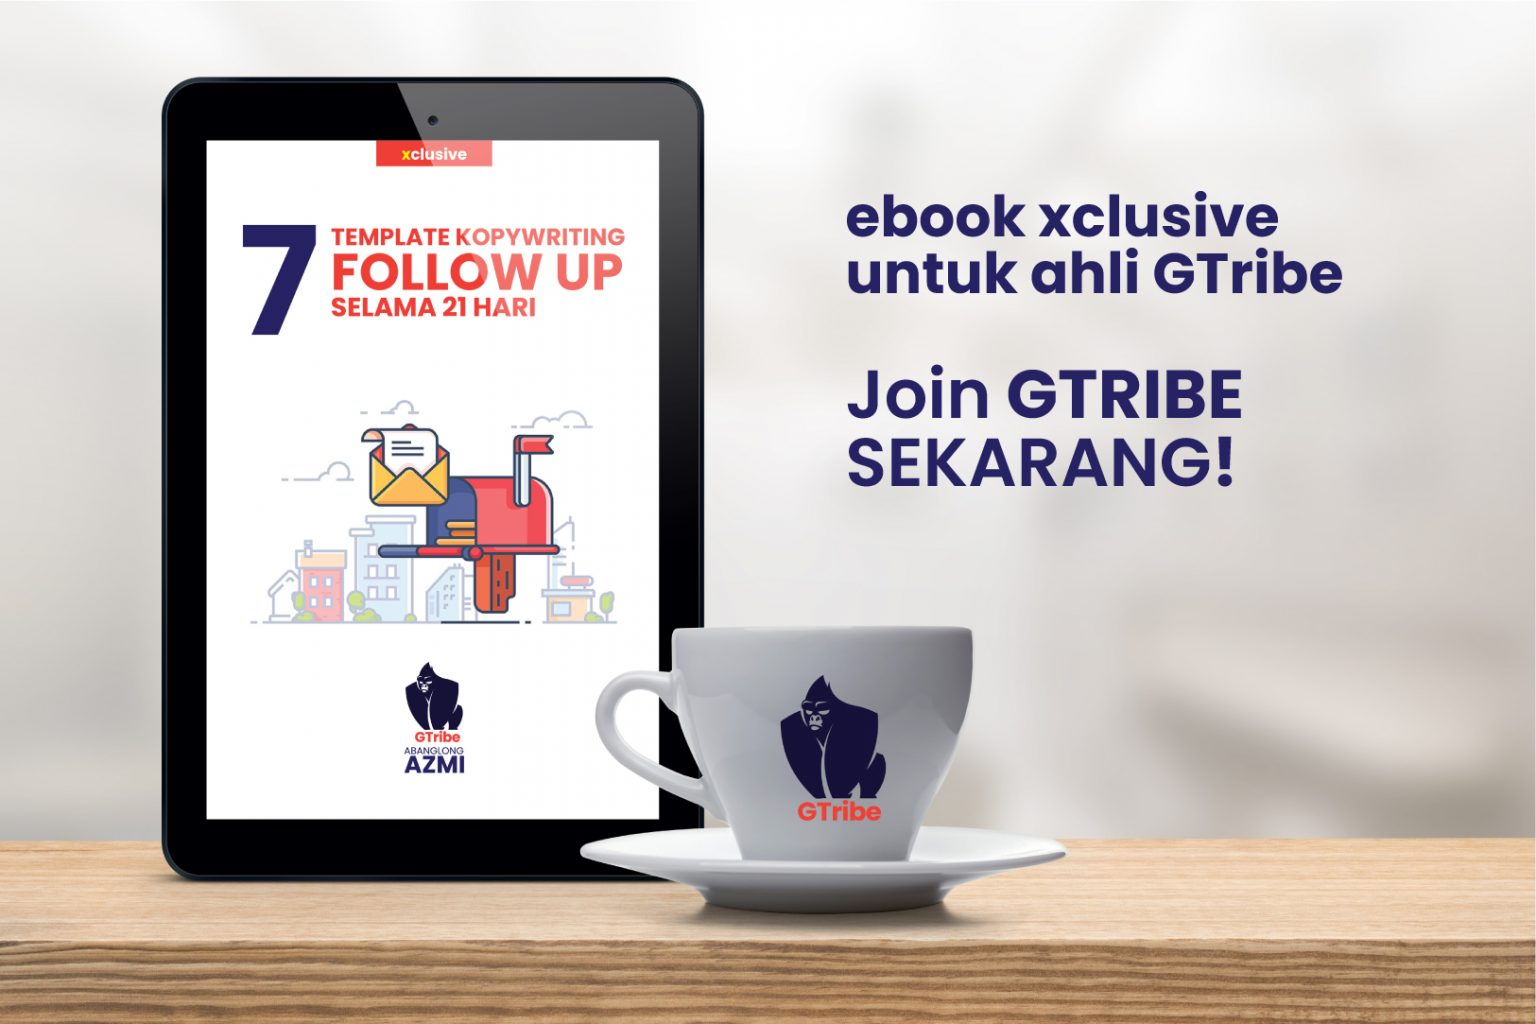 template copywriting follow up selama 21 hari